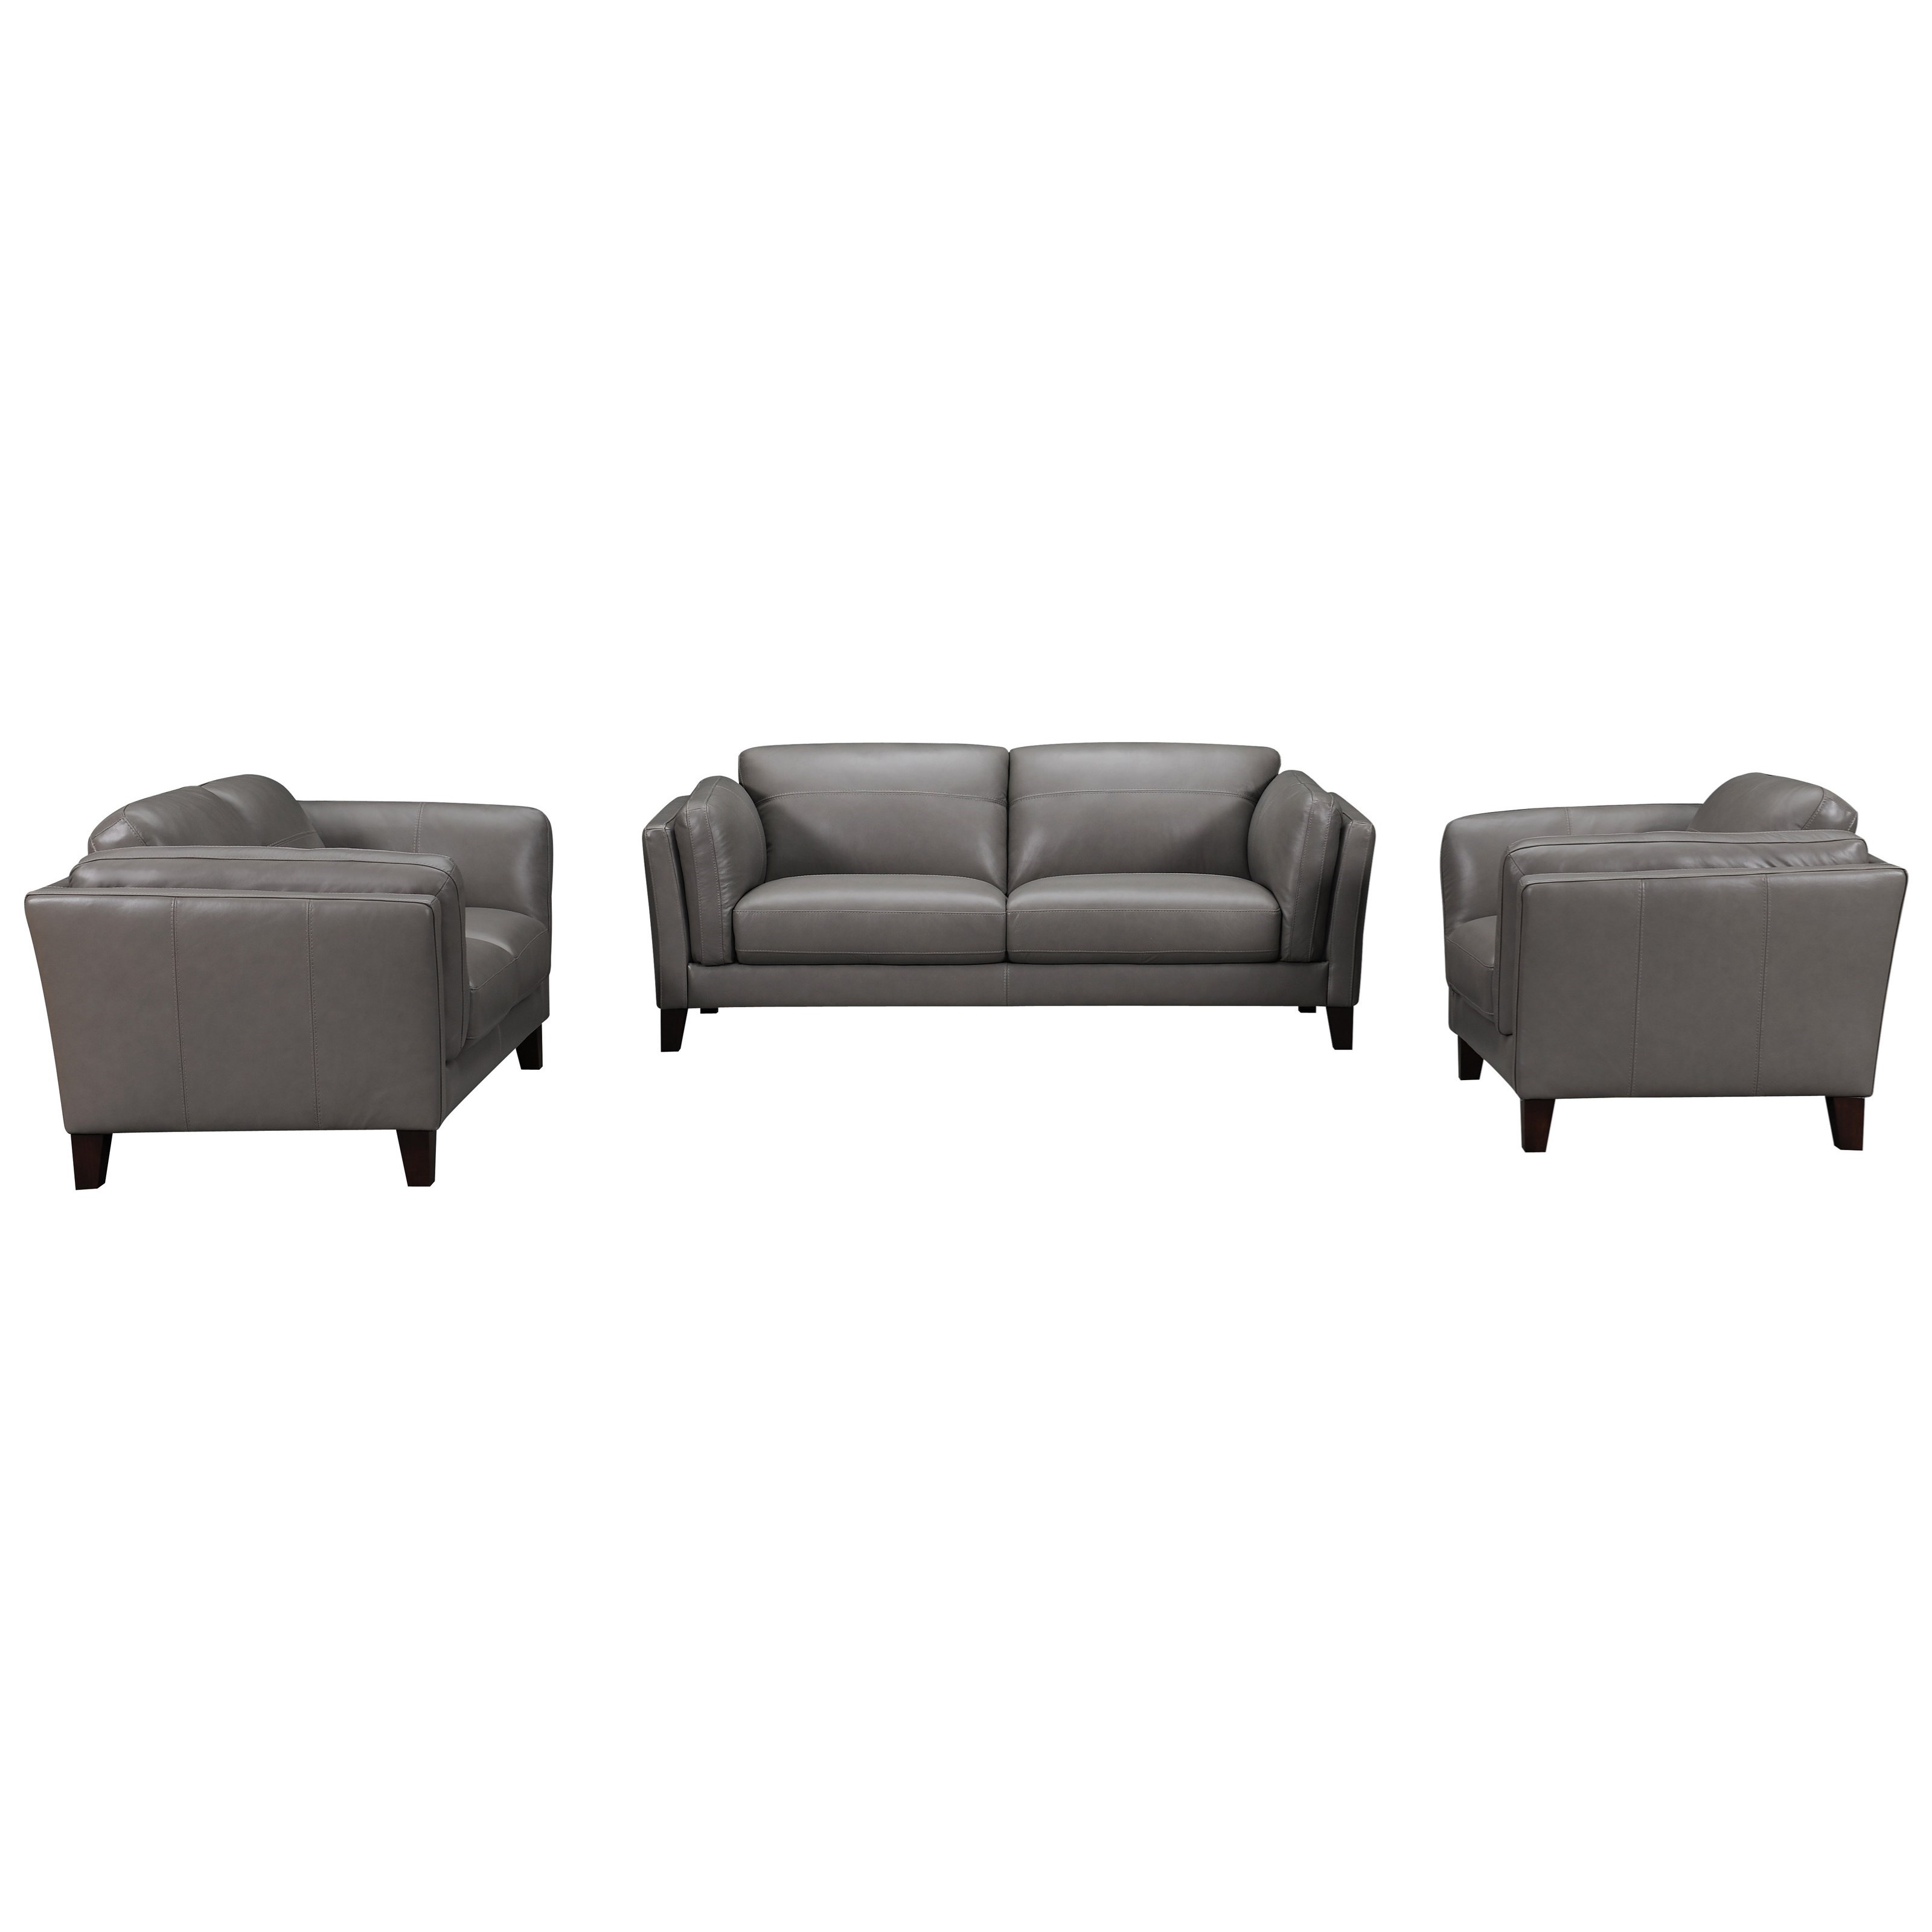 31808 Living Room Group by Violino at Stoney Creek Furniture